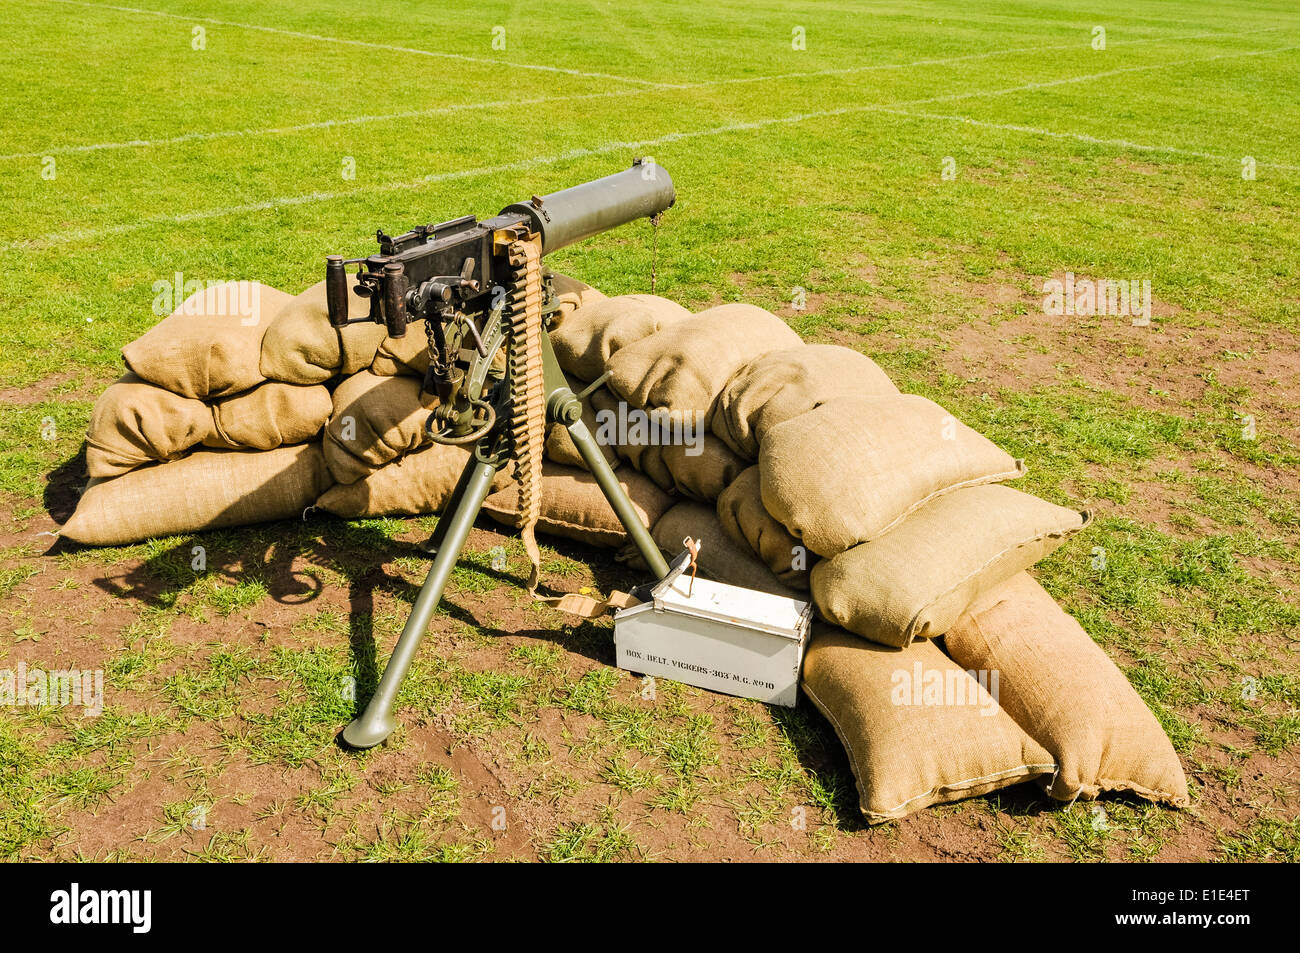 Vickers water cooled medium machine gun surrounded with sandbags, as used in World War 1. - Stock Image